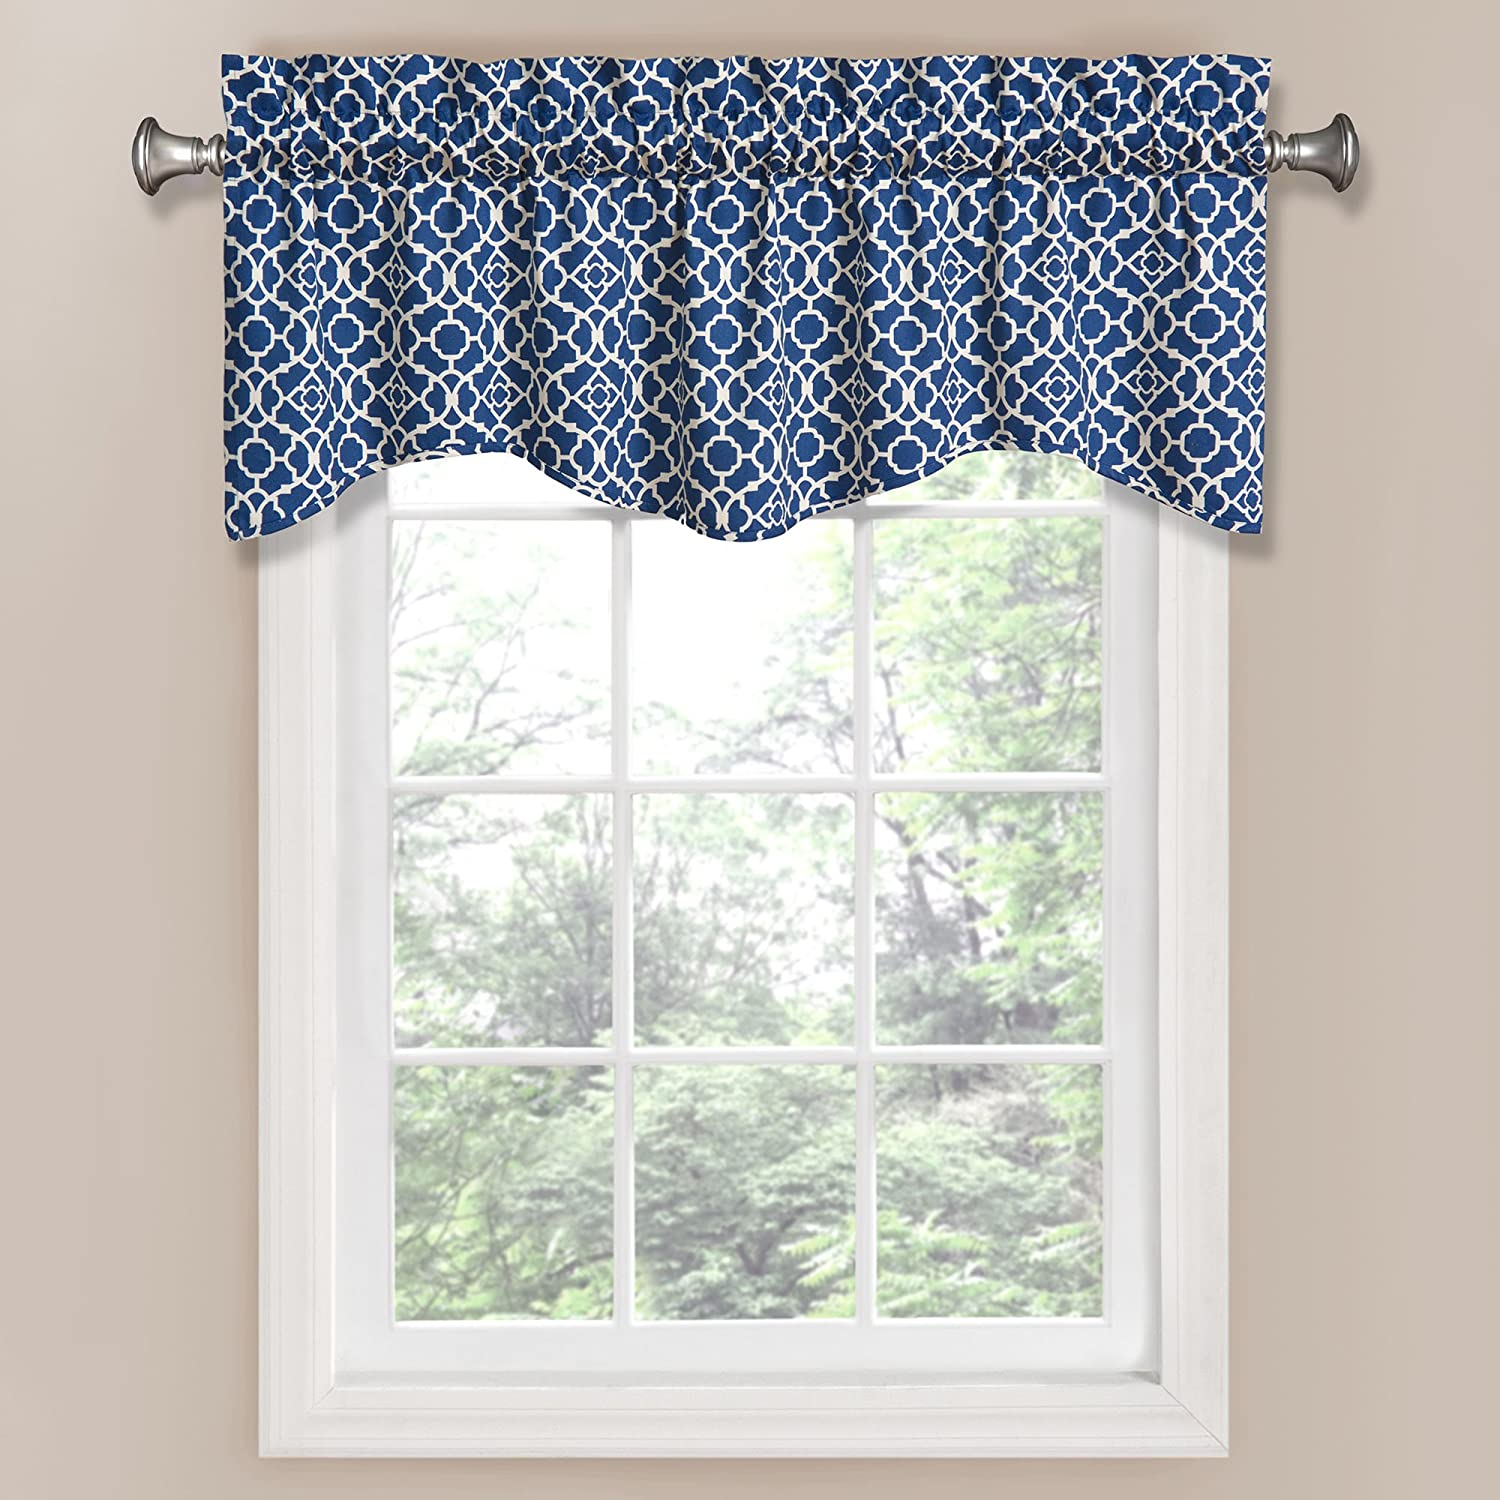 modern as well size and shower curtain styles inspirations tag design curtains bedding girl ideas of tags master windows gray together valance full bedroom fine plus image navy especial with matching blue